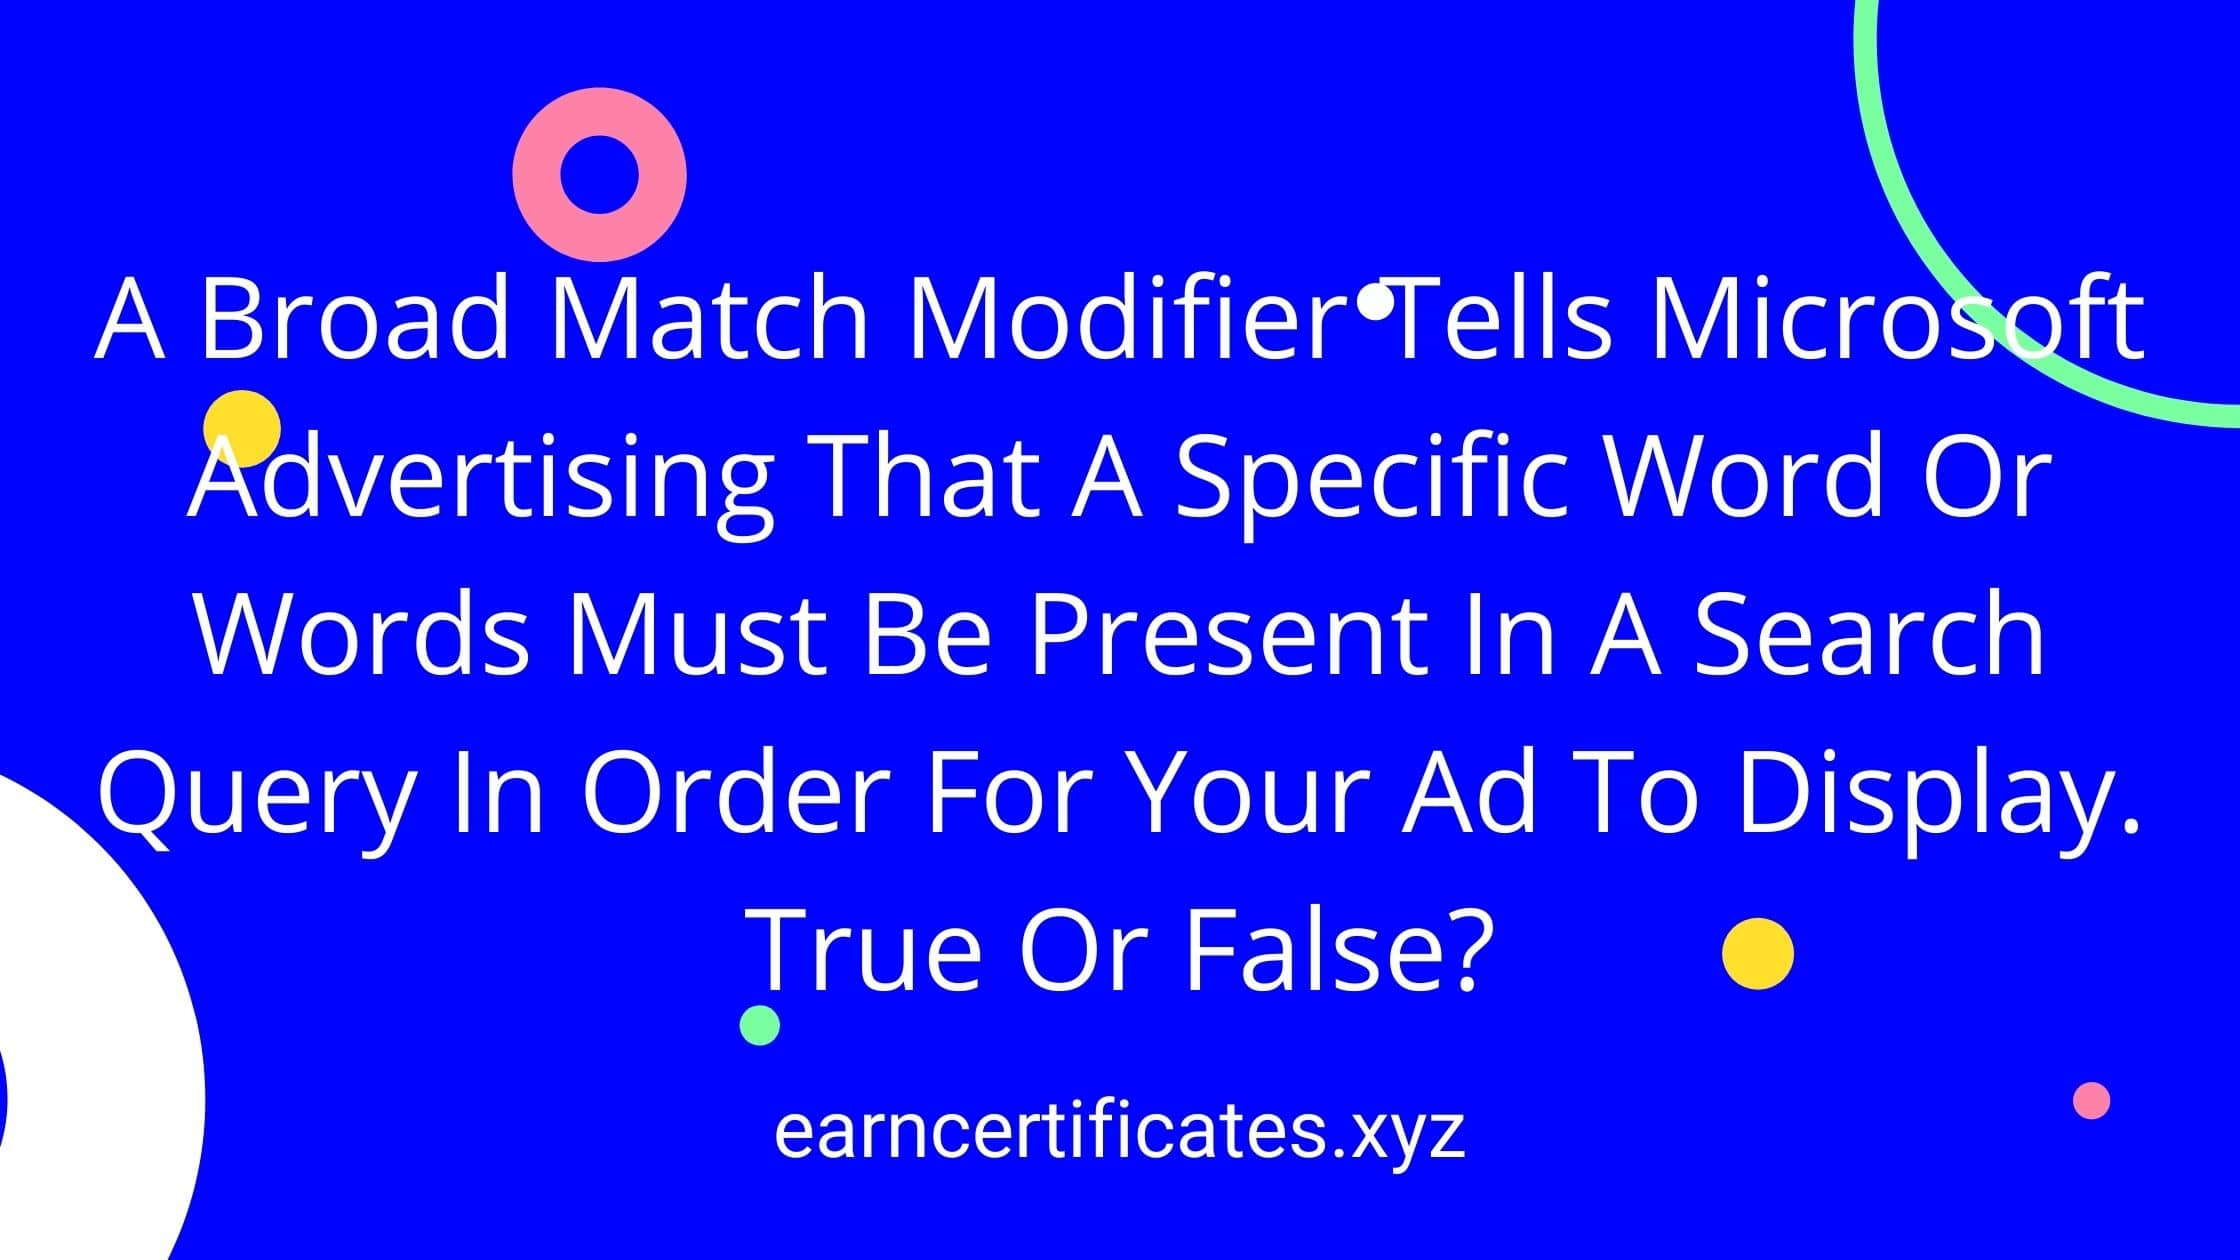 A Broad Match Modifier Tells Microsoft Advertising That A Specific Word Or Words Must Be Present In A Search Query In Order For Your Ad To Display. True Or False?